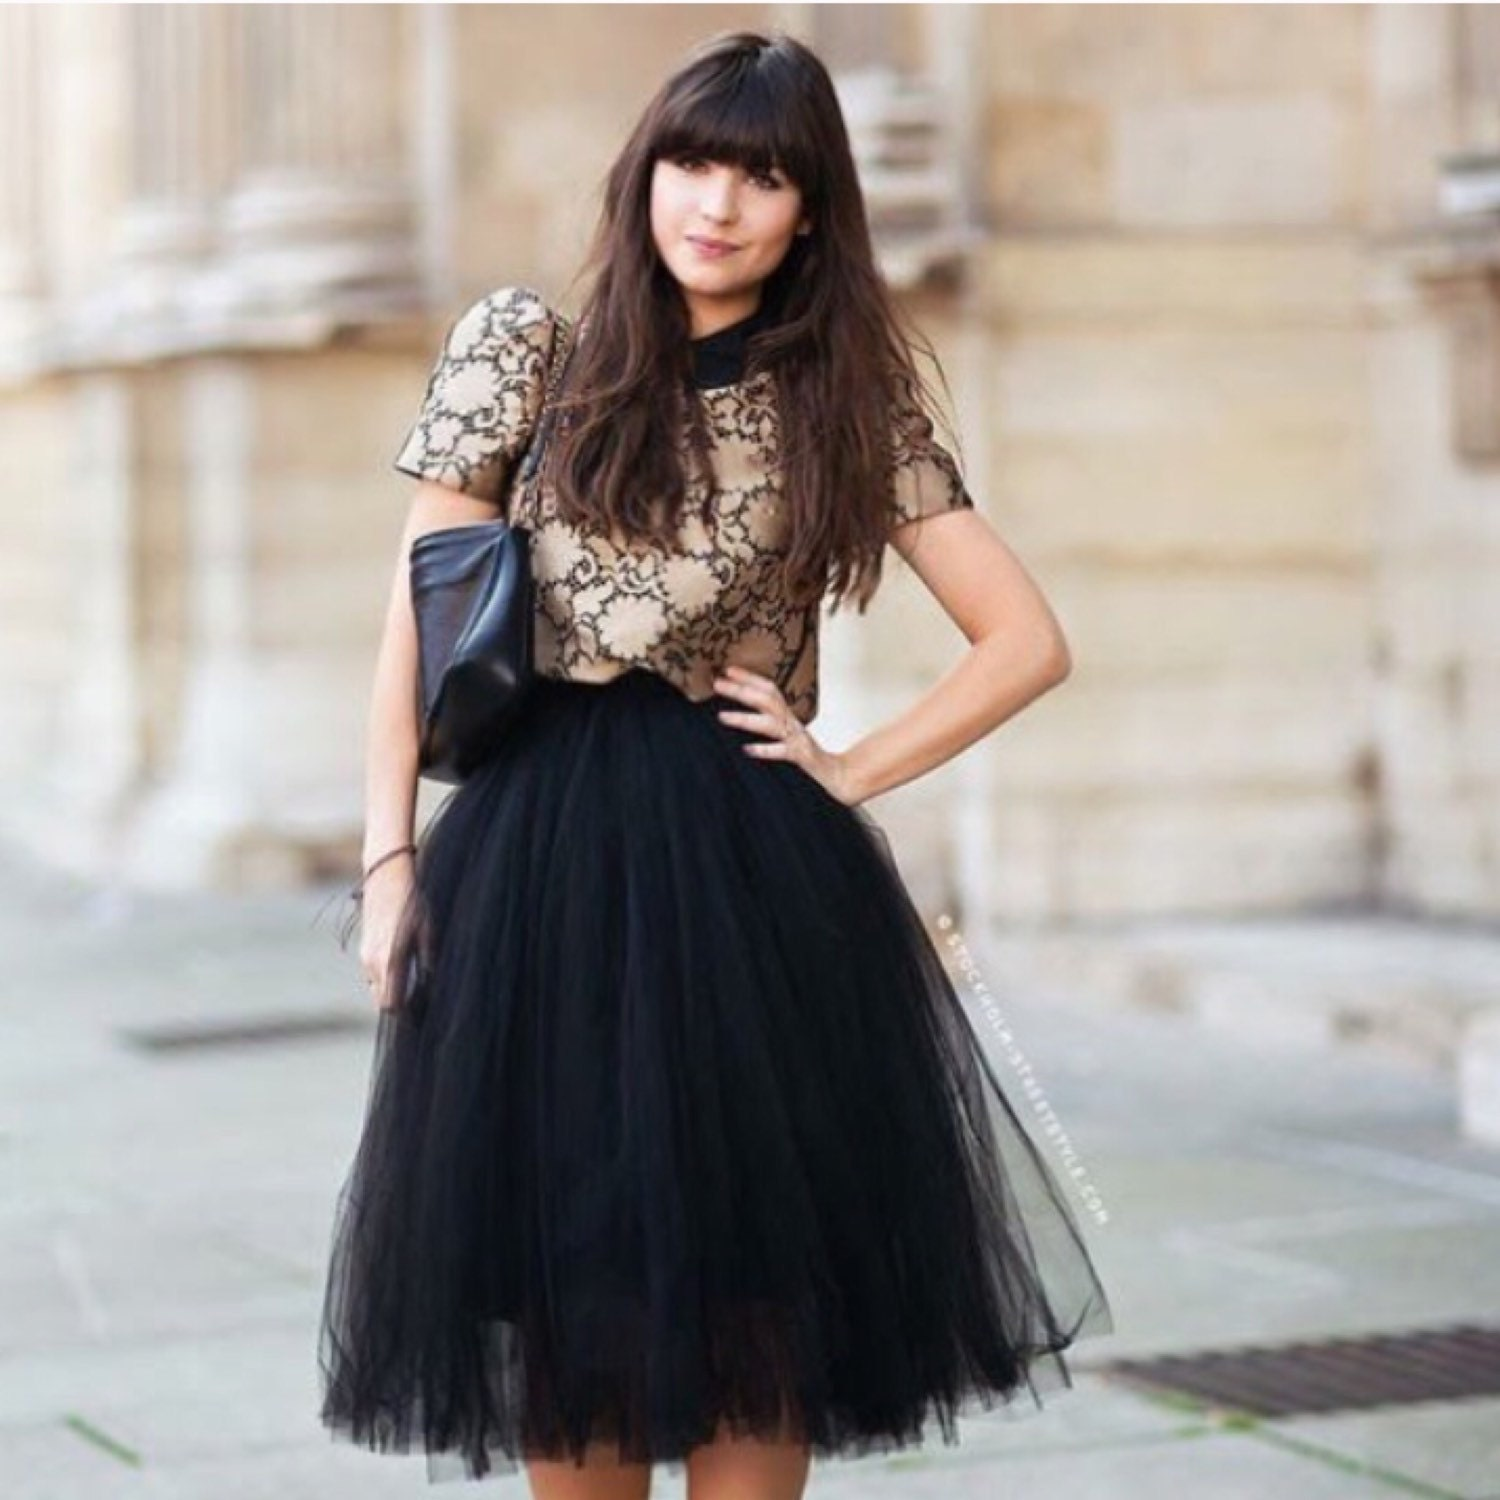 Black Tulle Skirt Bridesmaid Flower Girl Skirt Wedding Dress